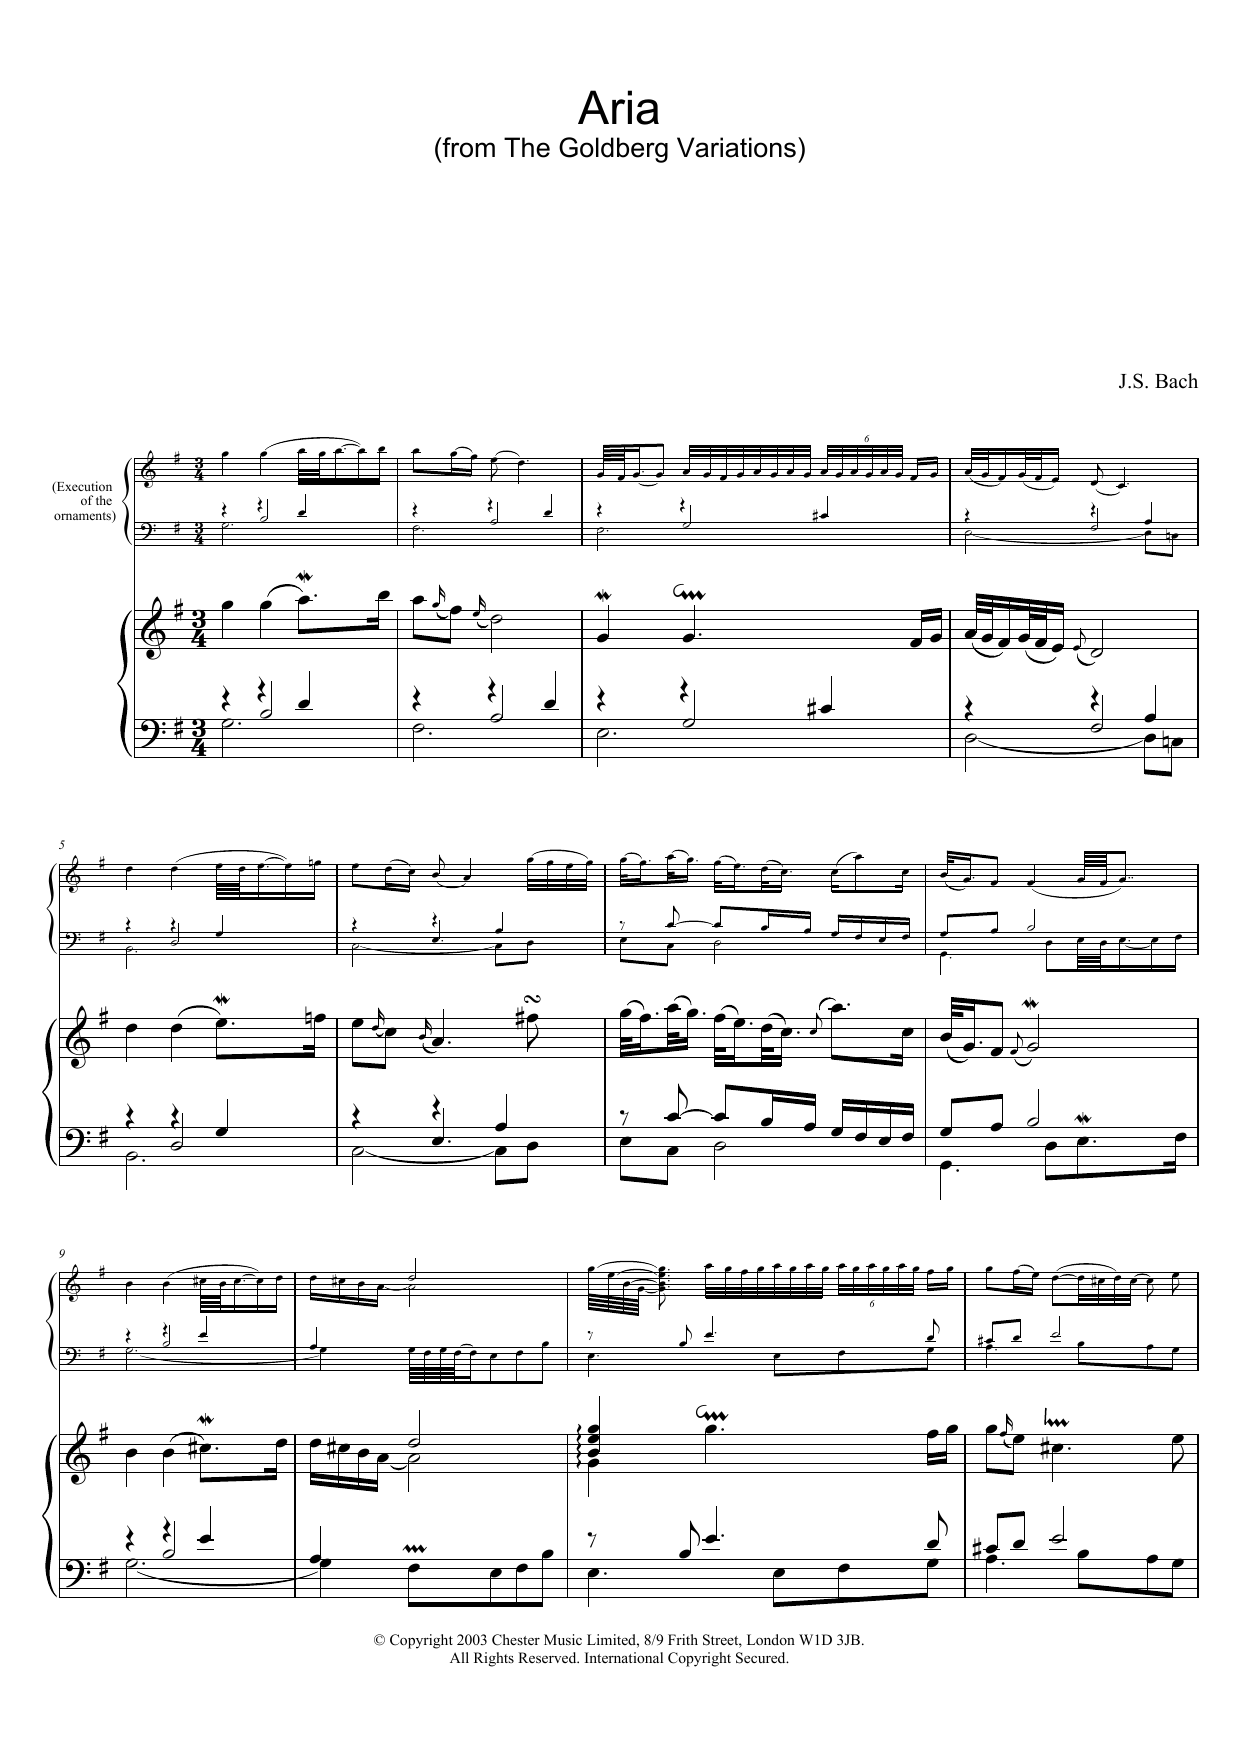 J.S. Bach Aria (from The Goldberg Variations) sheet music preview music notes and score for Piano including 3 page(s)